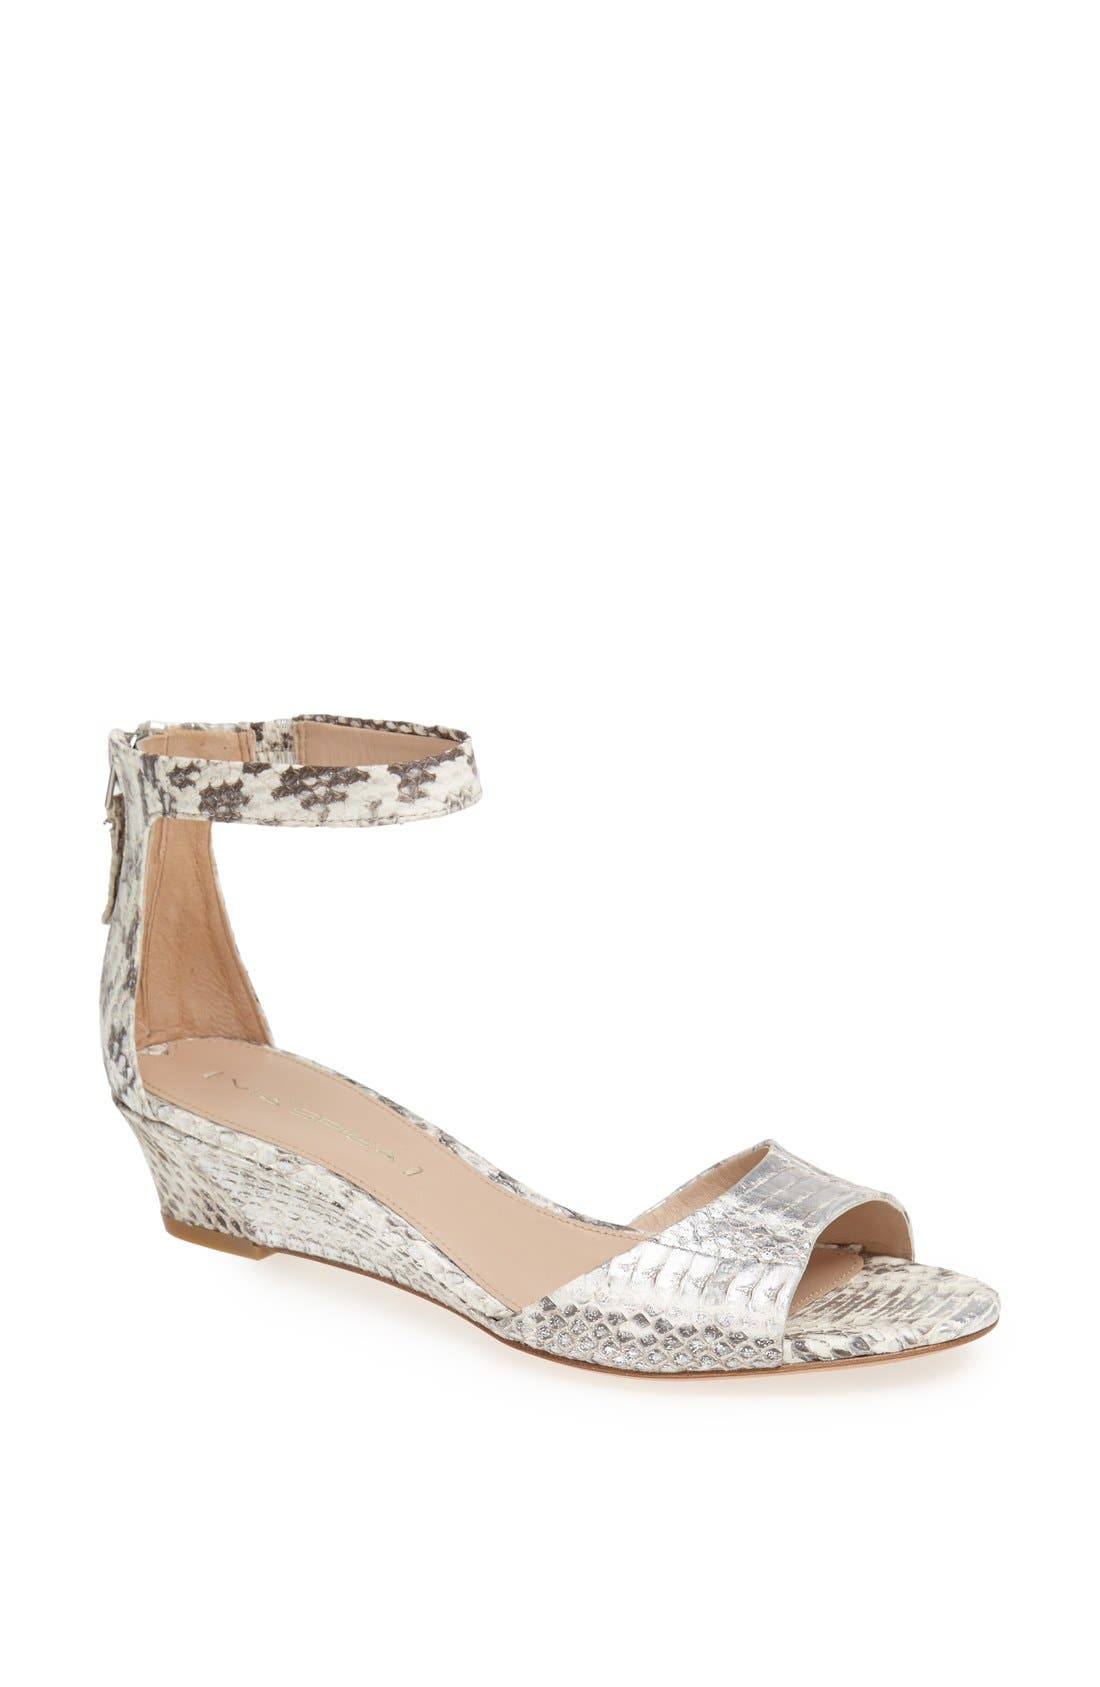 Main Image - Via Spiga 'Terrilyn' Wedge Sandal